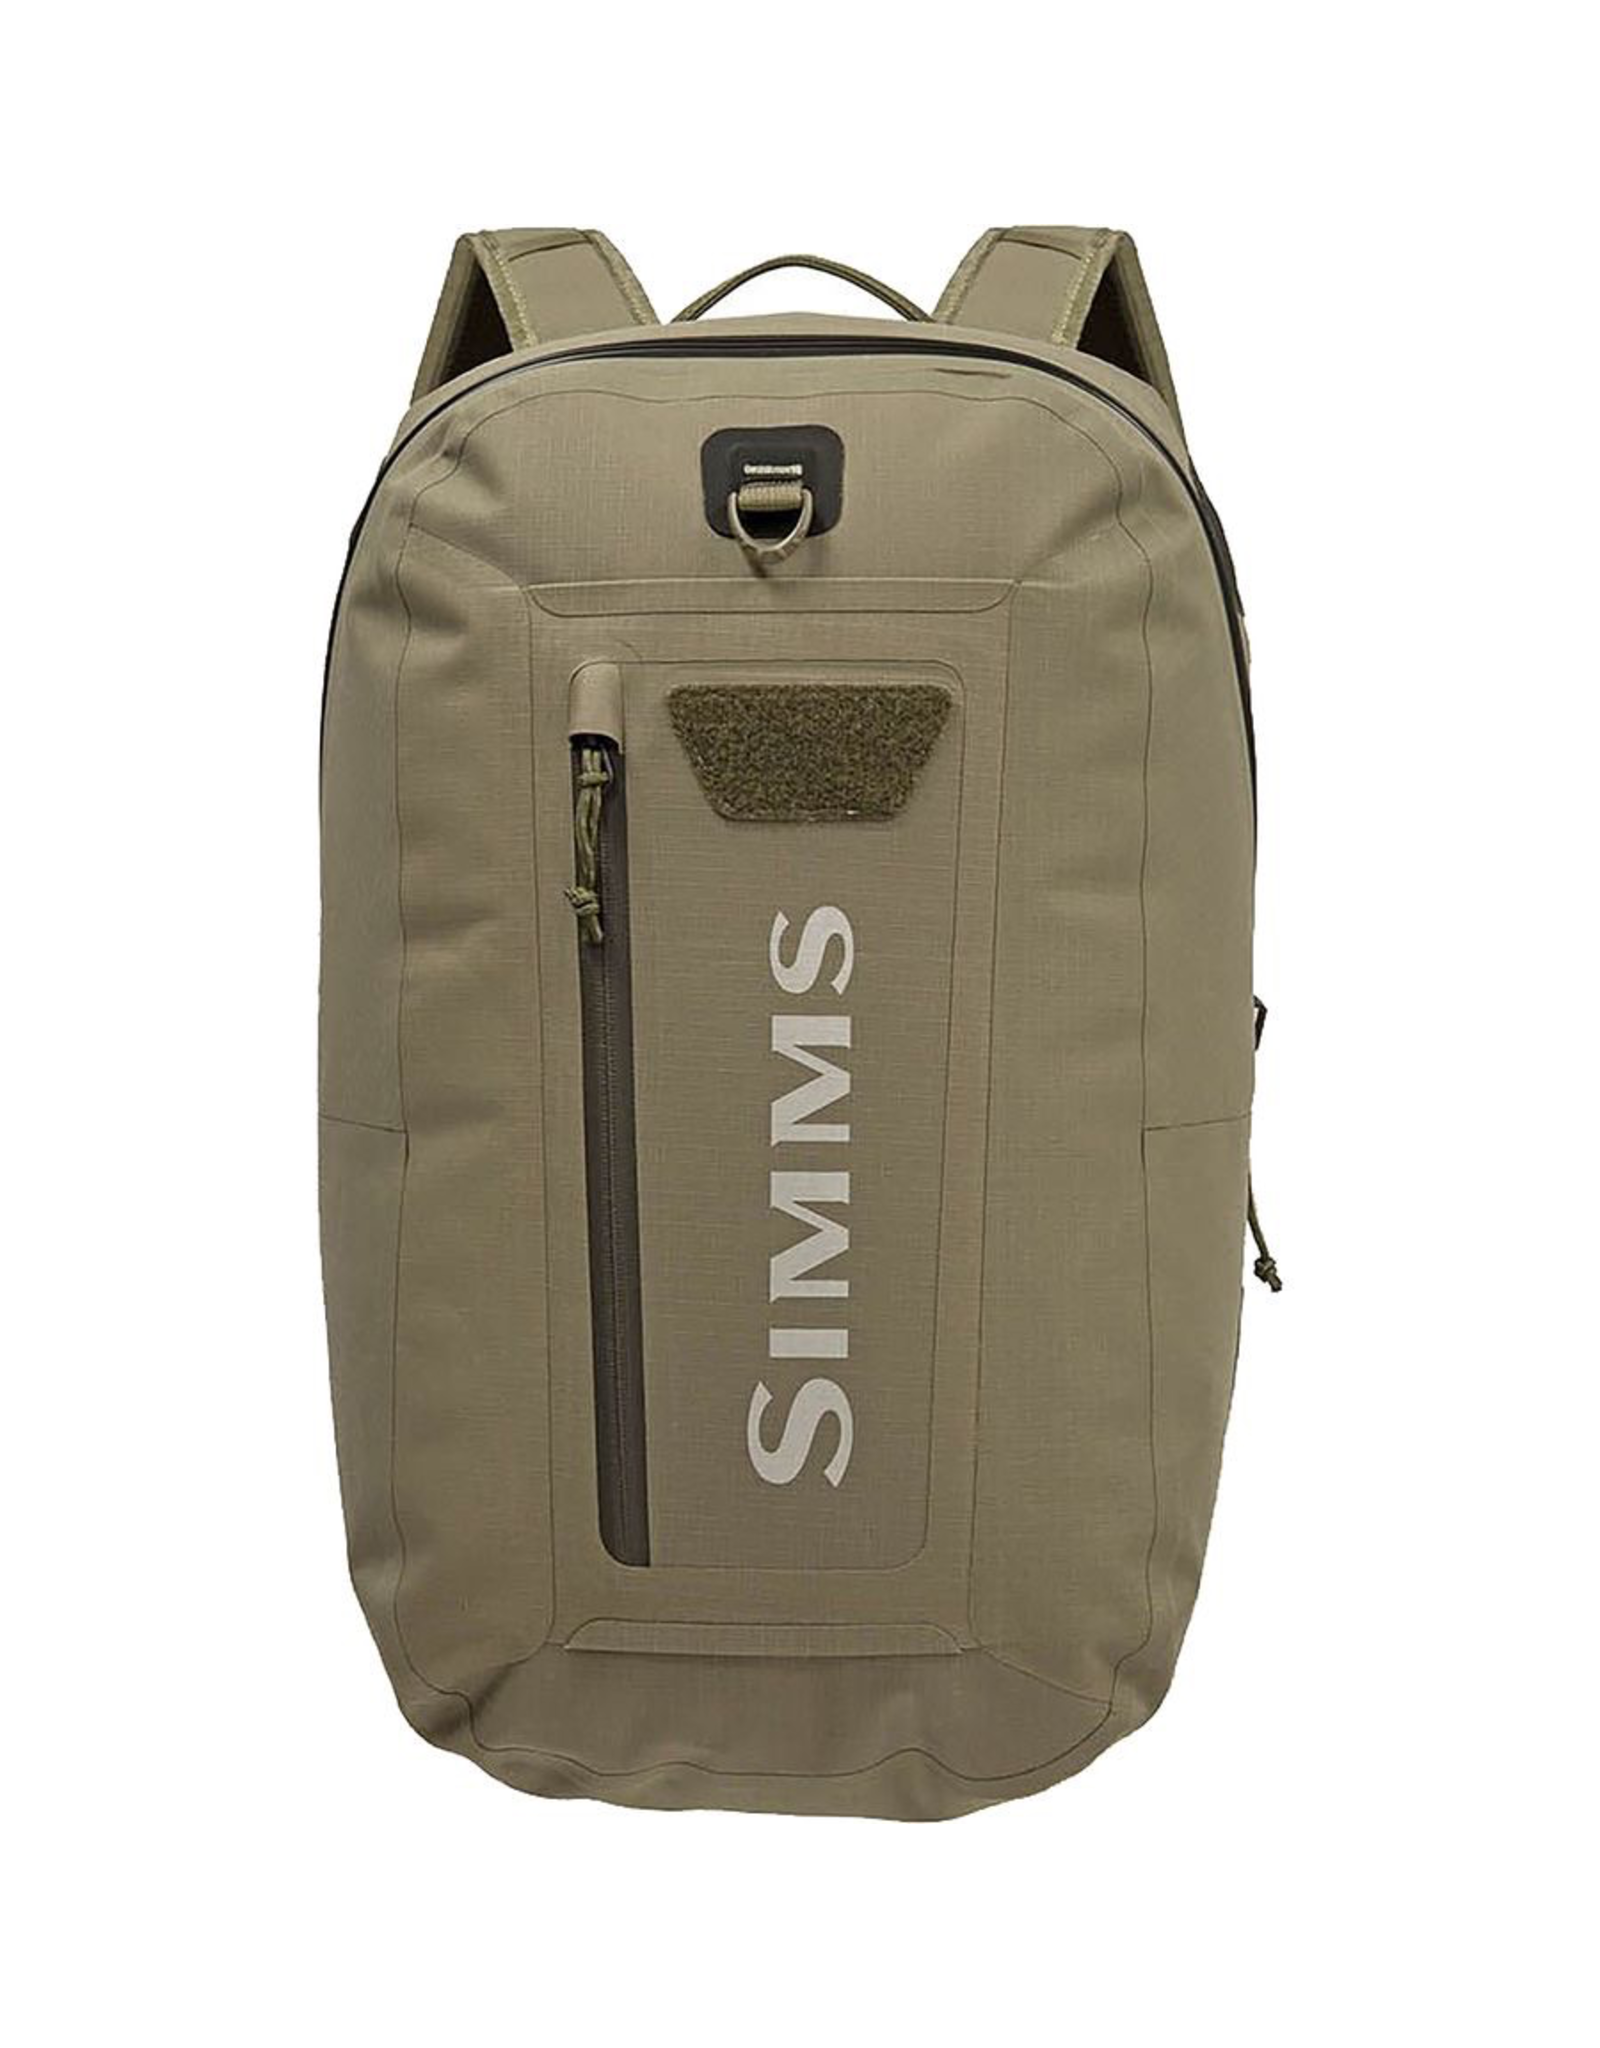 Simms SIMMS Dry Creek Z Fishing Backpack - 35L (Tan)